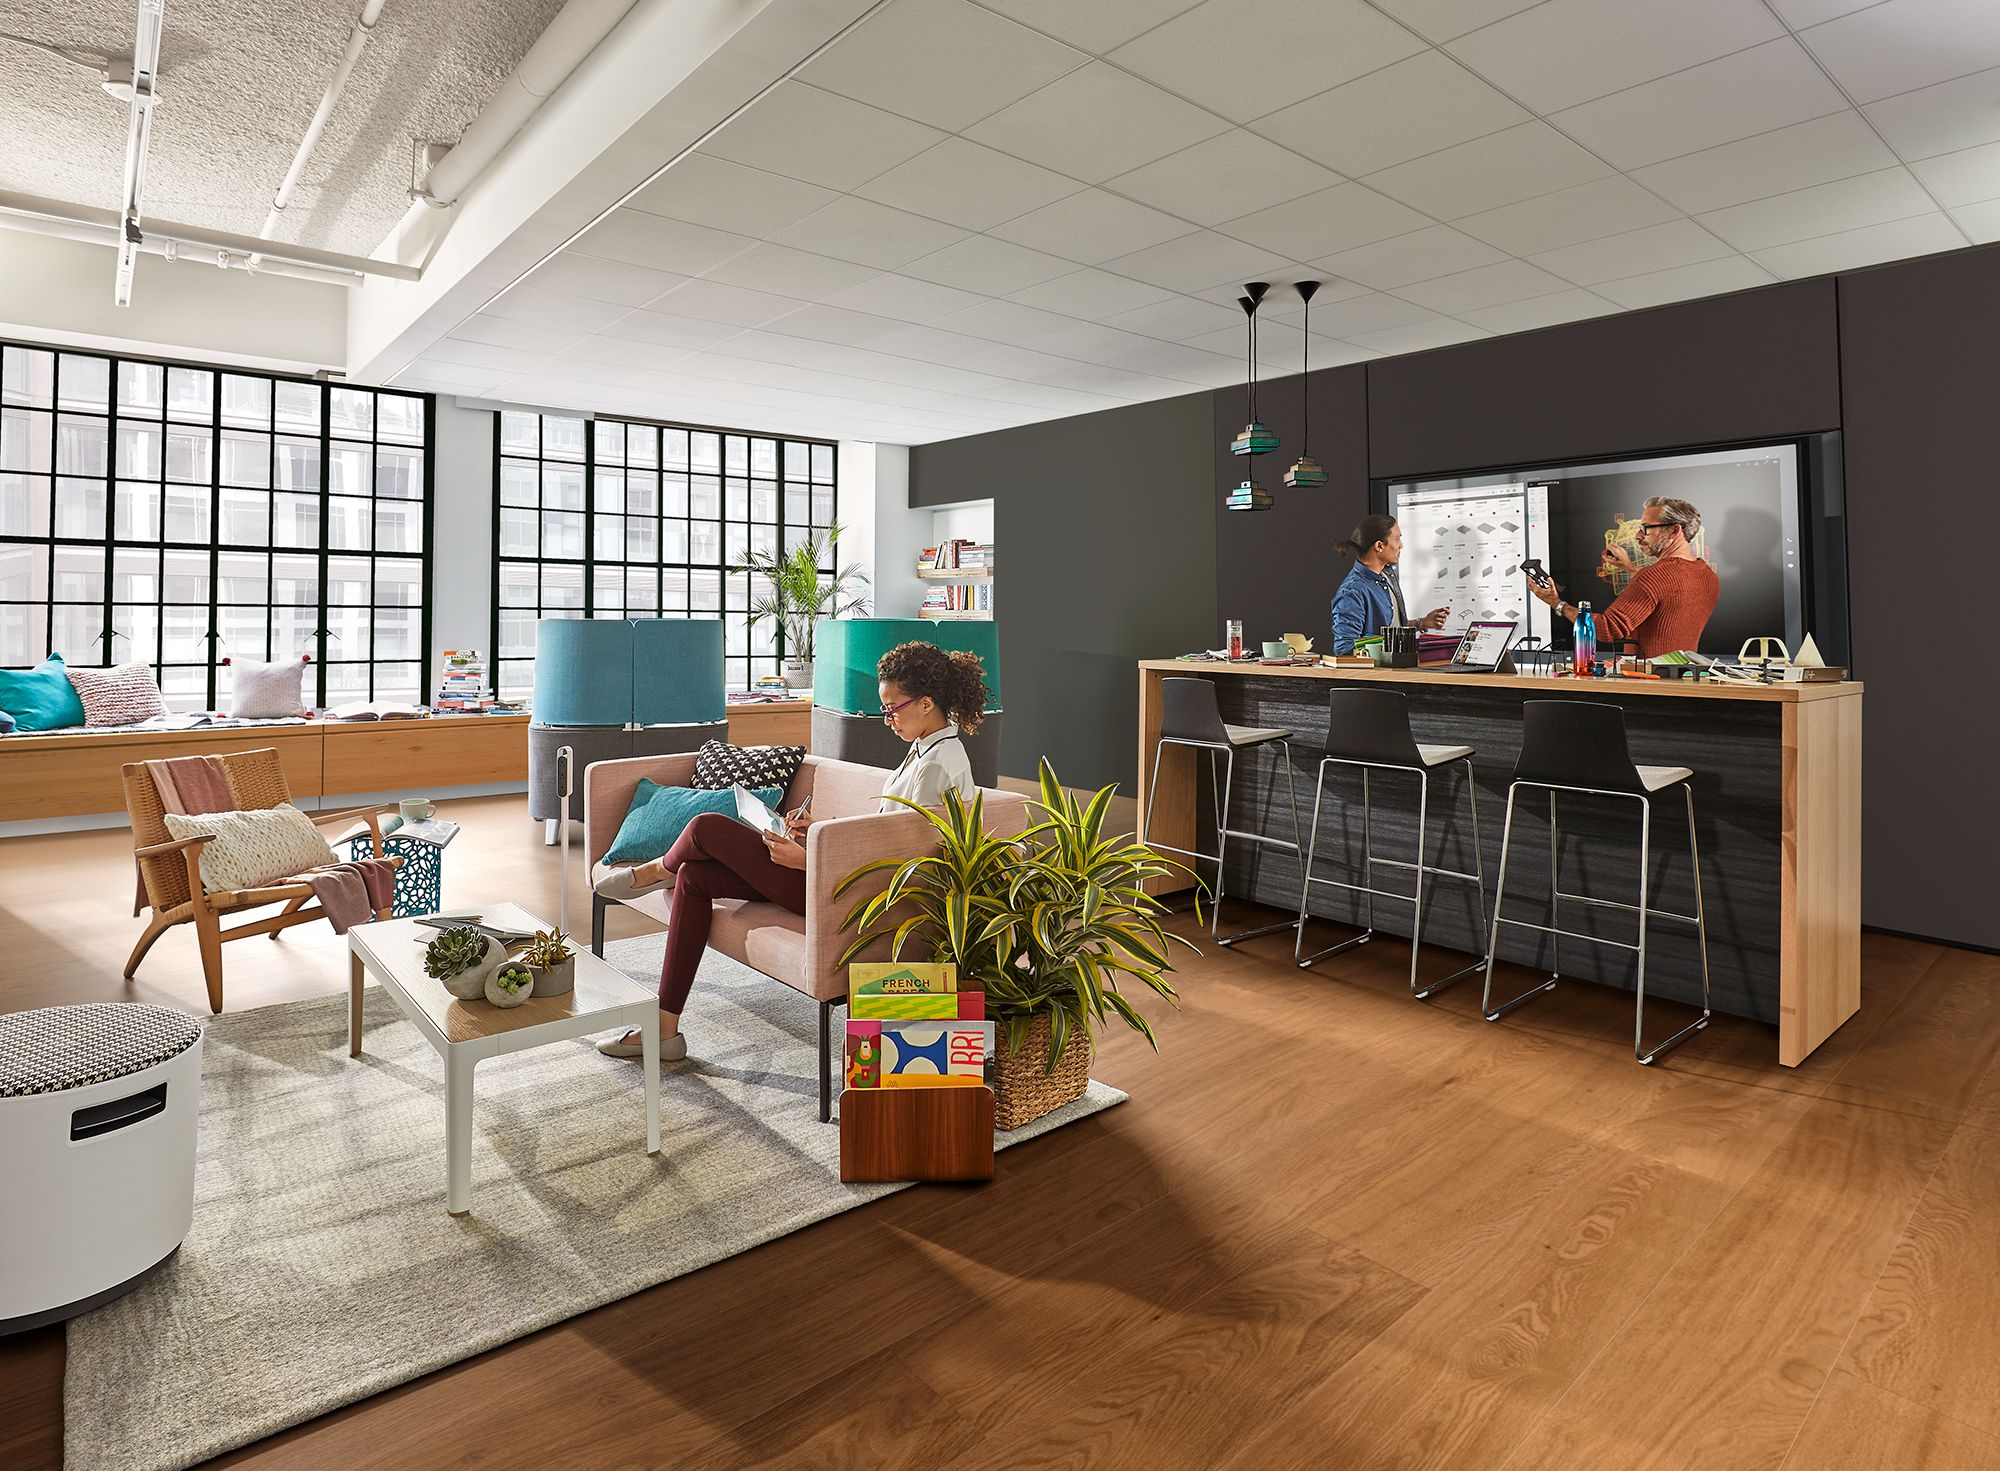 office interior design magazine. The Maker Commons, One Of Five Creative Spaces Developed By Steelcase And Microsoft To Boost. Glass OfficeOffice Interior DesignInterior Office Design Magazine